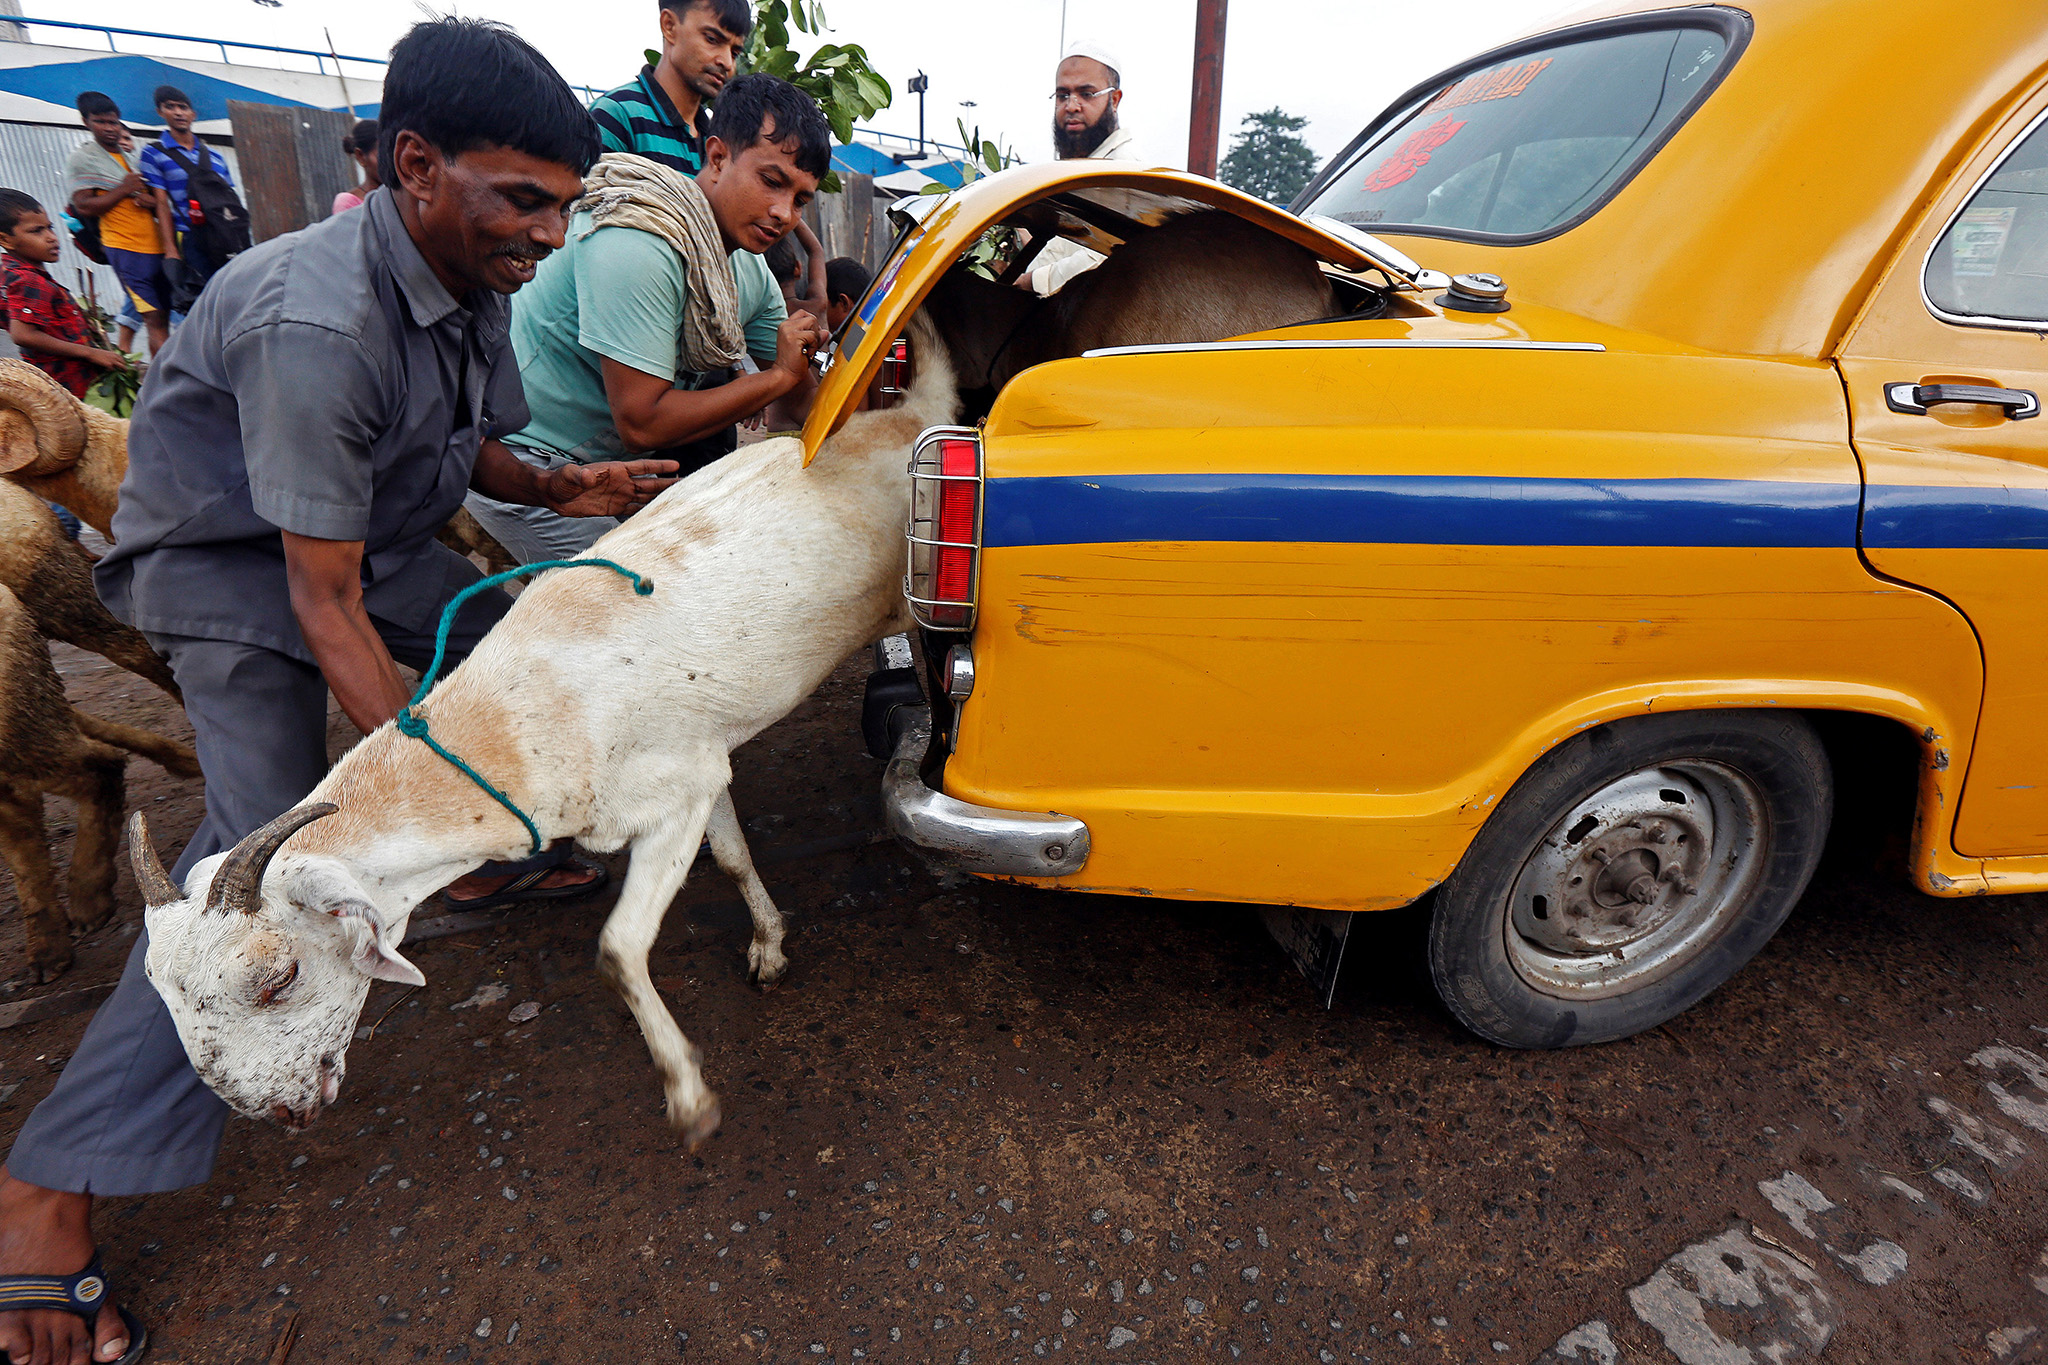 A goat tries to escape from the boot of a taxi after being purchased at a livestock market ahead of the Eid al-Adha festival in Kolkata, India, September 8, 2016. REUTERS/Rupak De Chowdhuri     TPX IMAGES OF THE DAY